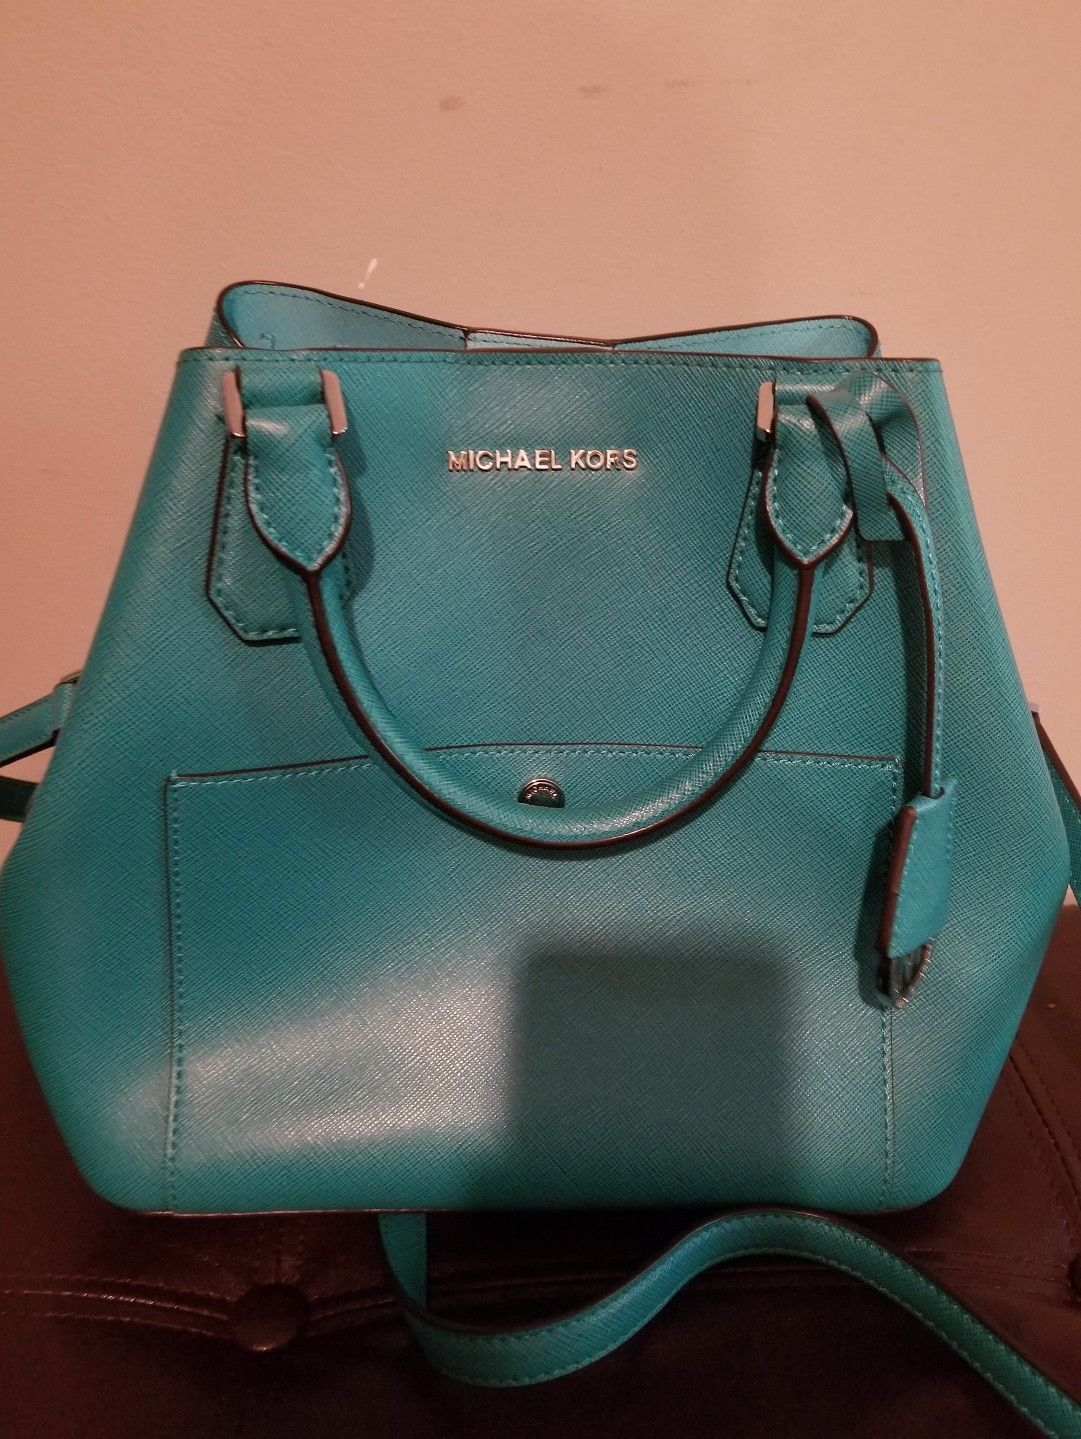 ec392164a4197 MICHAEL KORS Large Saffiano Greenwich Leather Tote Green Luggage MSRP  358